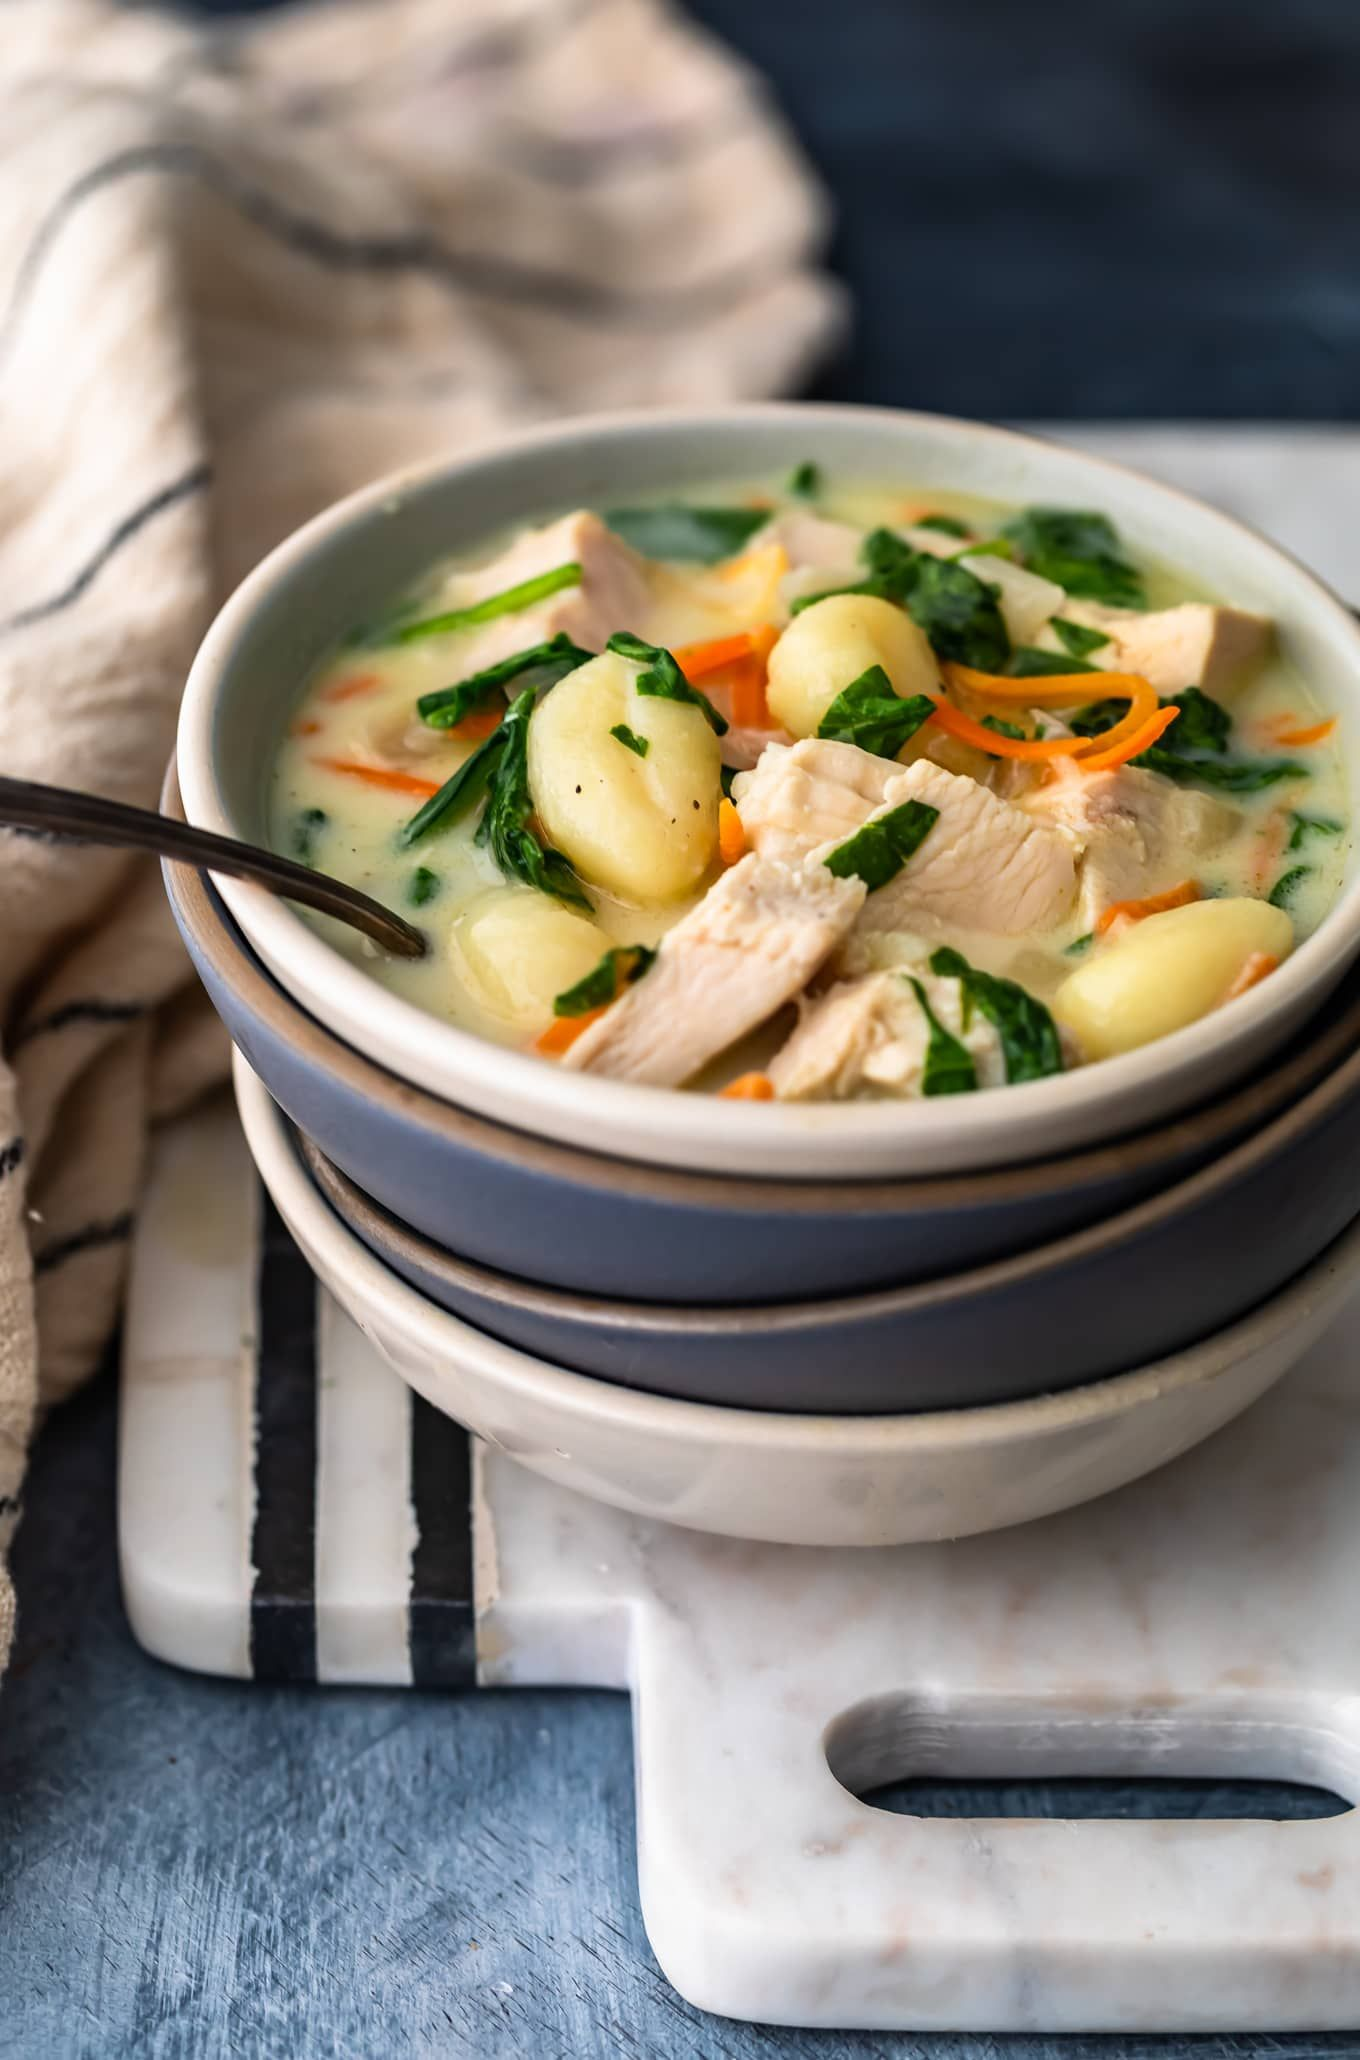 Chicken Gnocchi Soup is one of my favorites because it's